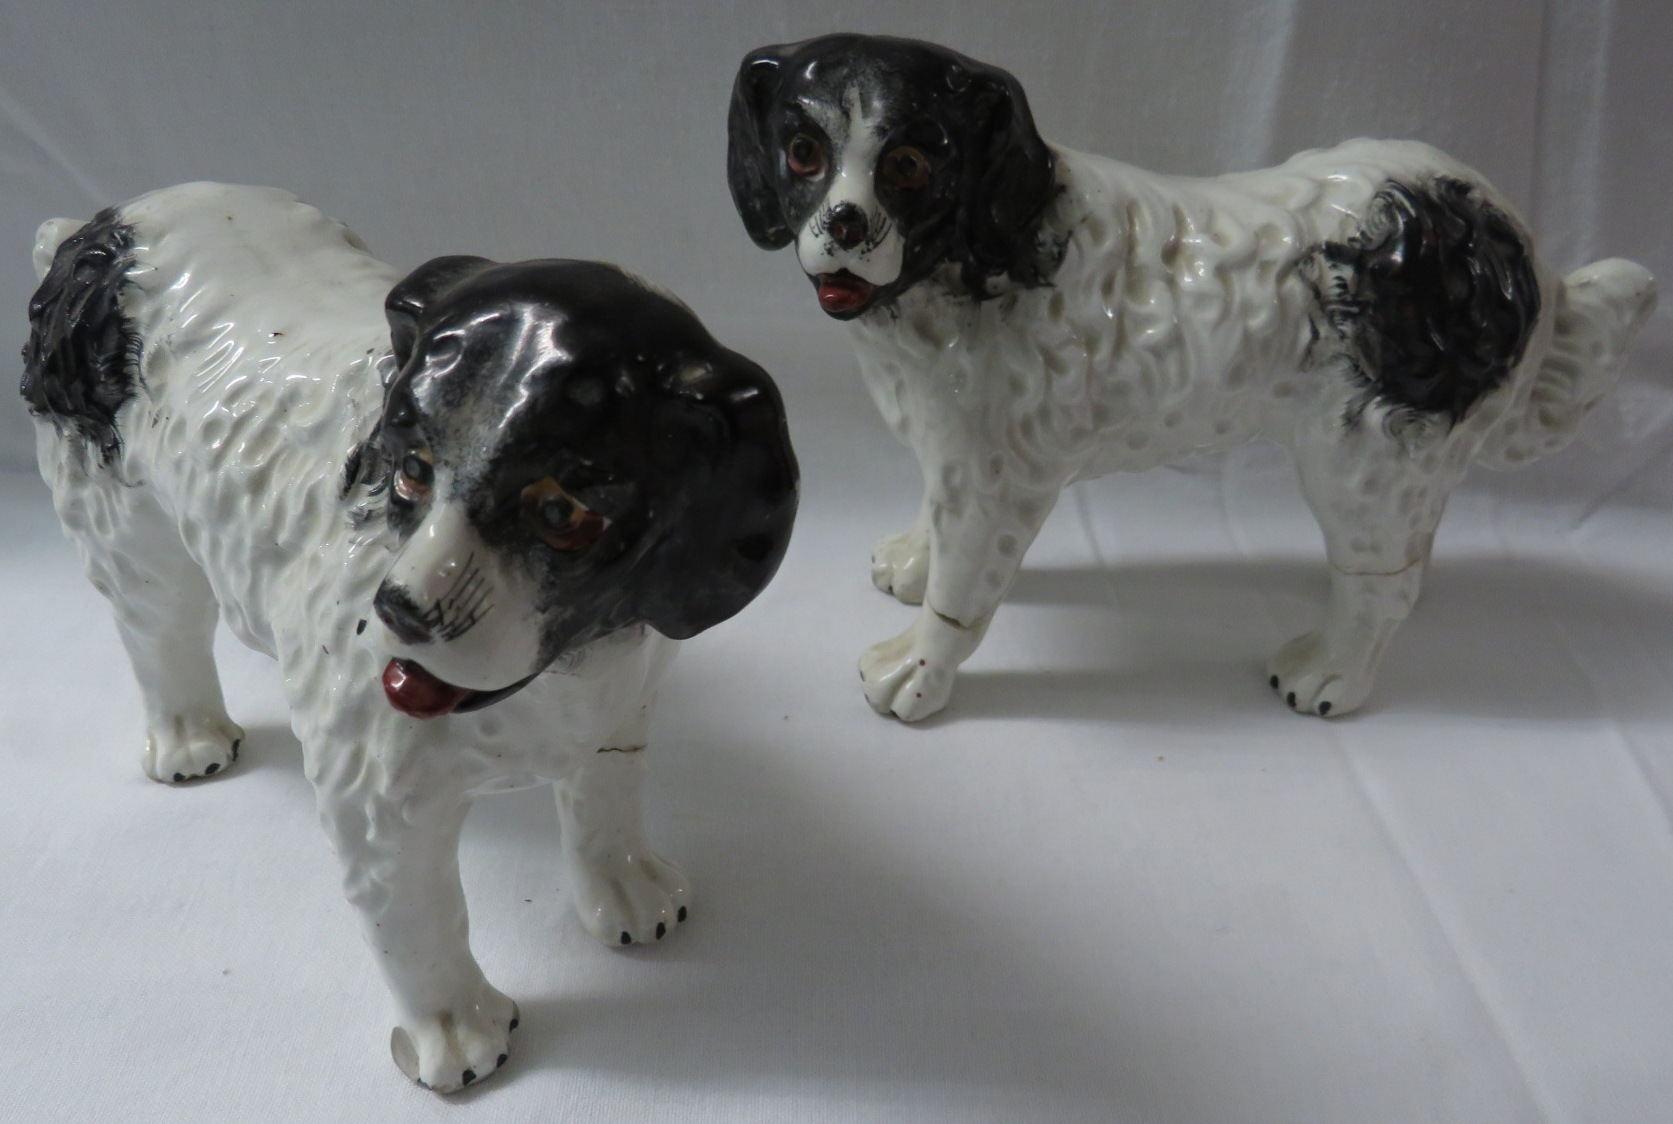 Lot 30 - Pair of 18th century Staffordshire dogs, modelled standing, black and white, height to top of head